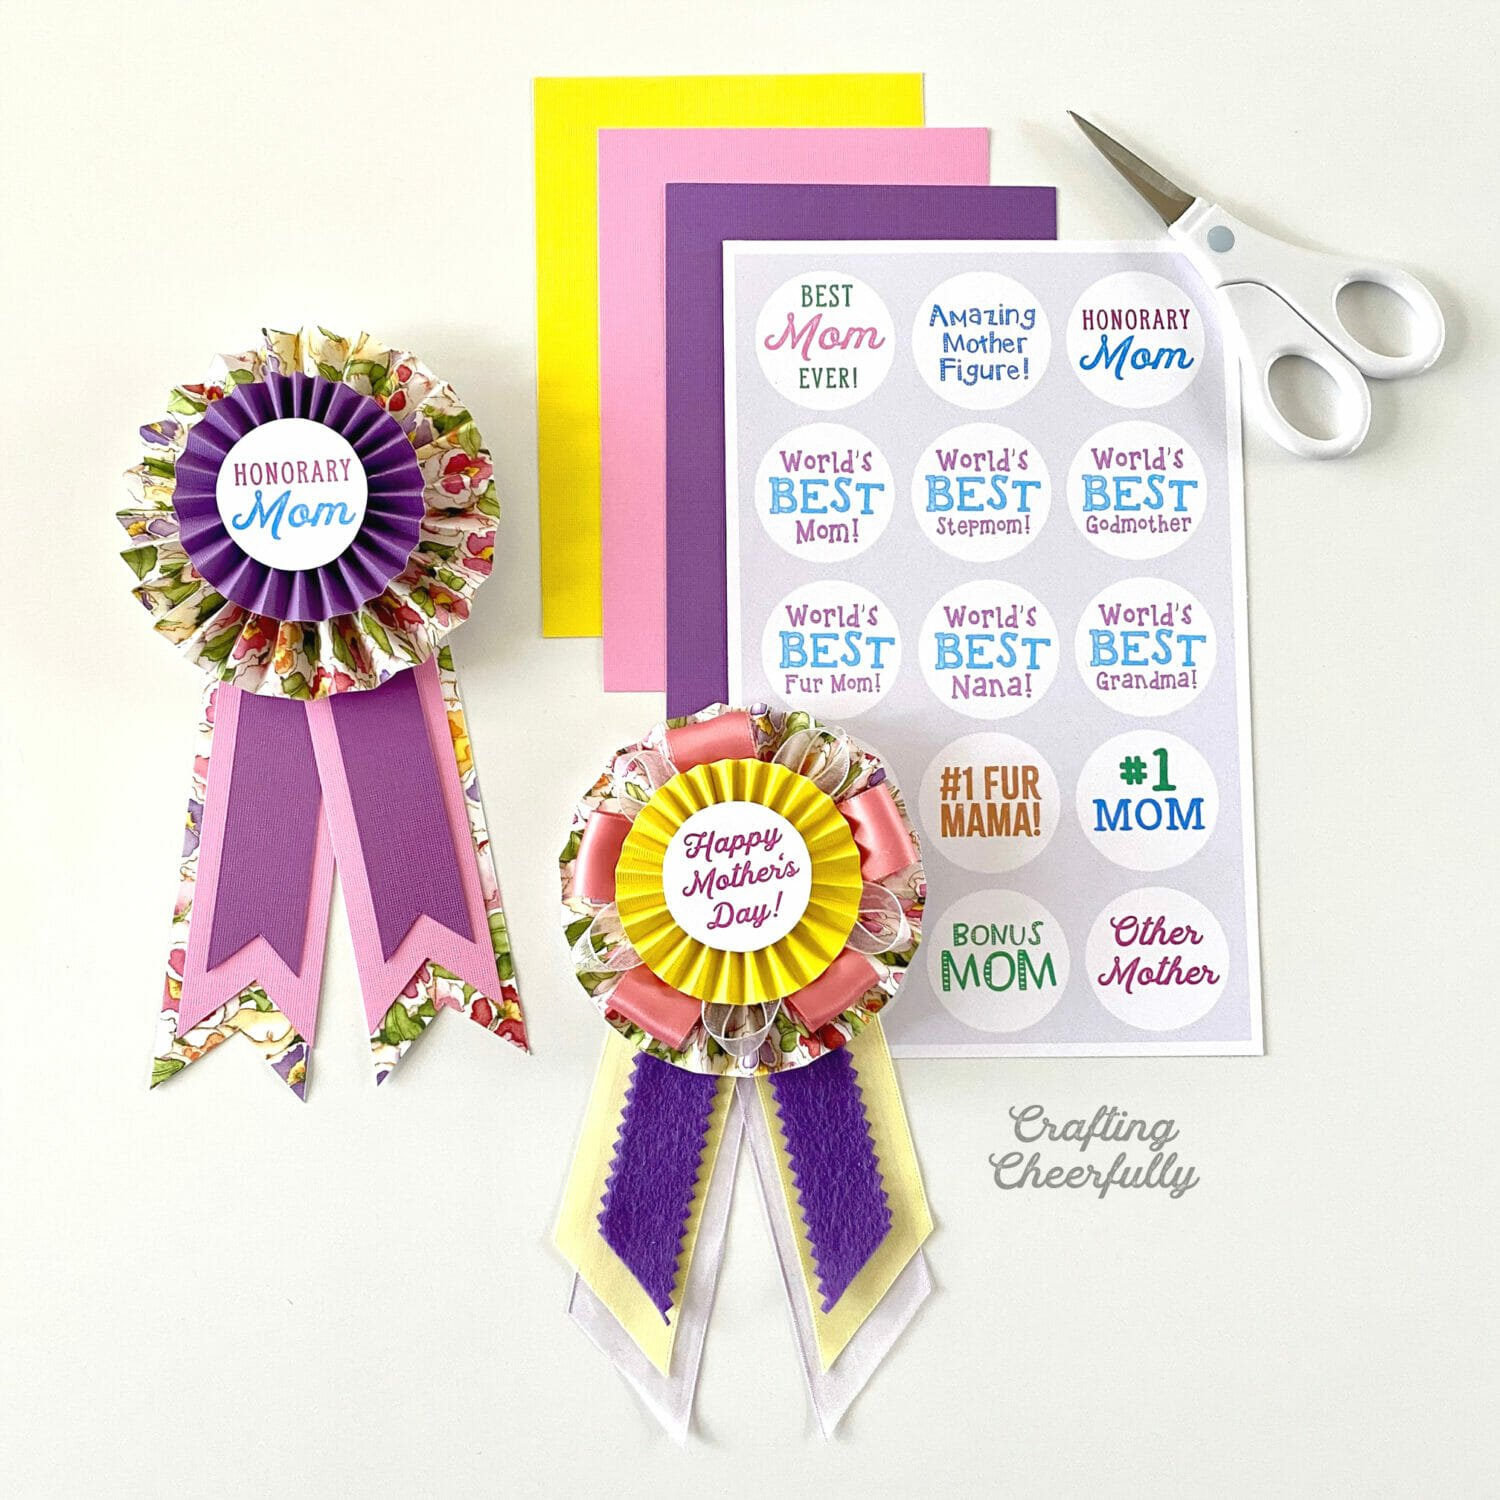 Paper medallion pins lay next to colored paper and a sheet of titles and a white scissors.